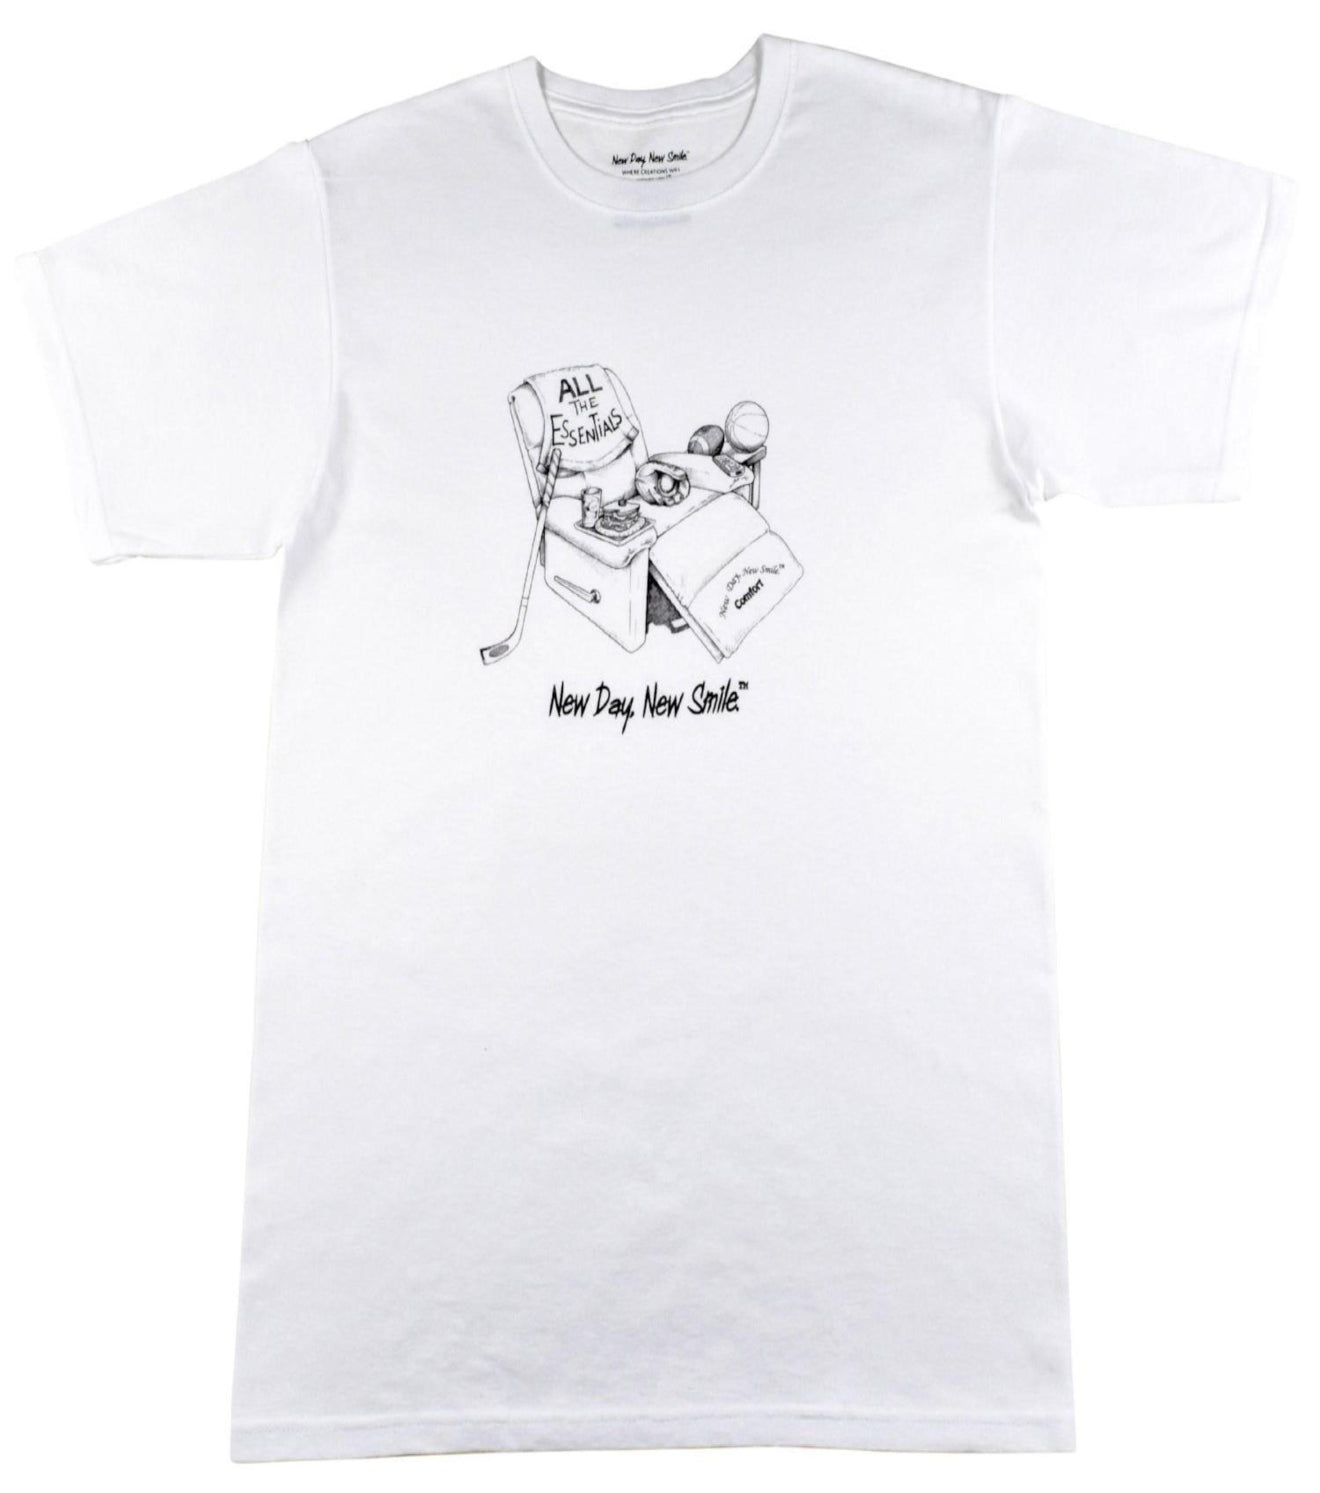 New Day New Smile Men's Sports Fanatic White T-Shirt | available at NewDayNewSmile.com